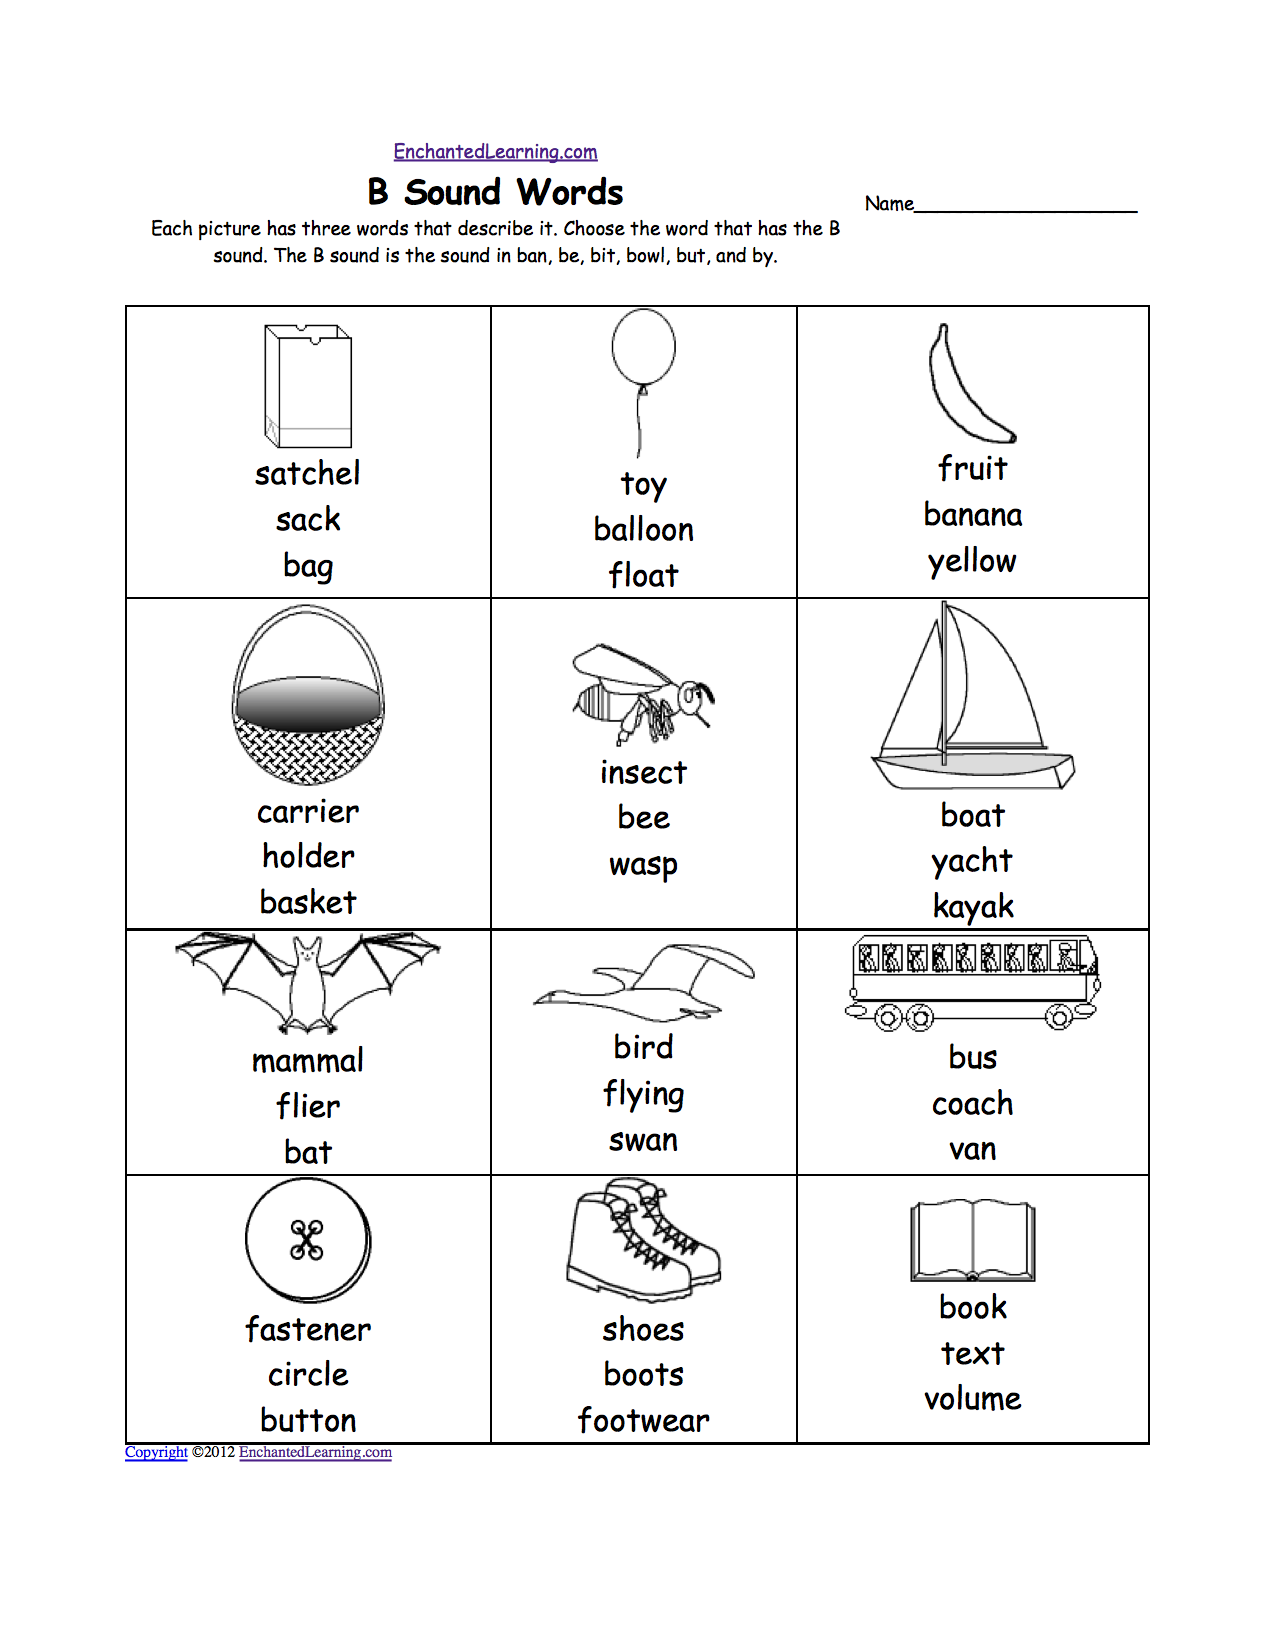 Proatmealus  Terrific Phonics Worksheets Multiple Choice Worksheets To Print  With Exciting Quotbquot Sound Phonics Worksheet Multiple Choice Each Picture Has Three Words That Describe It Choose The Word That Has A Quotbquot Sound The Quotbquot Sound Is The Sound  With Captivating Digraph Ph Worksheets Also Wh Questions Exercises Worksheets In Addition Preposition Worksheets For Grade  And Cube Net Worksheet As Well As Printable Scissor Skills Practice Worksheets Additionally Making Change Math Worksheets From Enchantedlearningcom With Proatmealus  Exciting Phonics Worksheets Multiple Choice Worksheets To Print  With Captivating Quotbquot Sound Phonics Worksheet Multiple Choice Each Picture Has Three Words That Describe It Choose The Word That Has A Quotbquot Sound The Quotbquot Sound Is The Sound  And Terrific Digraph Ph Worksheets Also Wh Questions Exercises Worksheets In Addition Preposition Worksheets For Grade  From Enchantedlearningcom